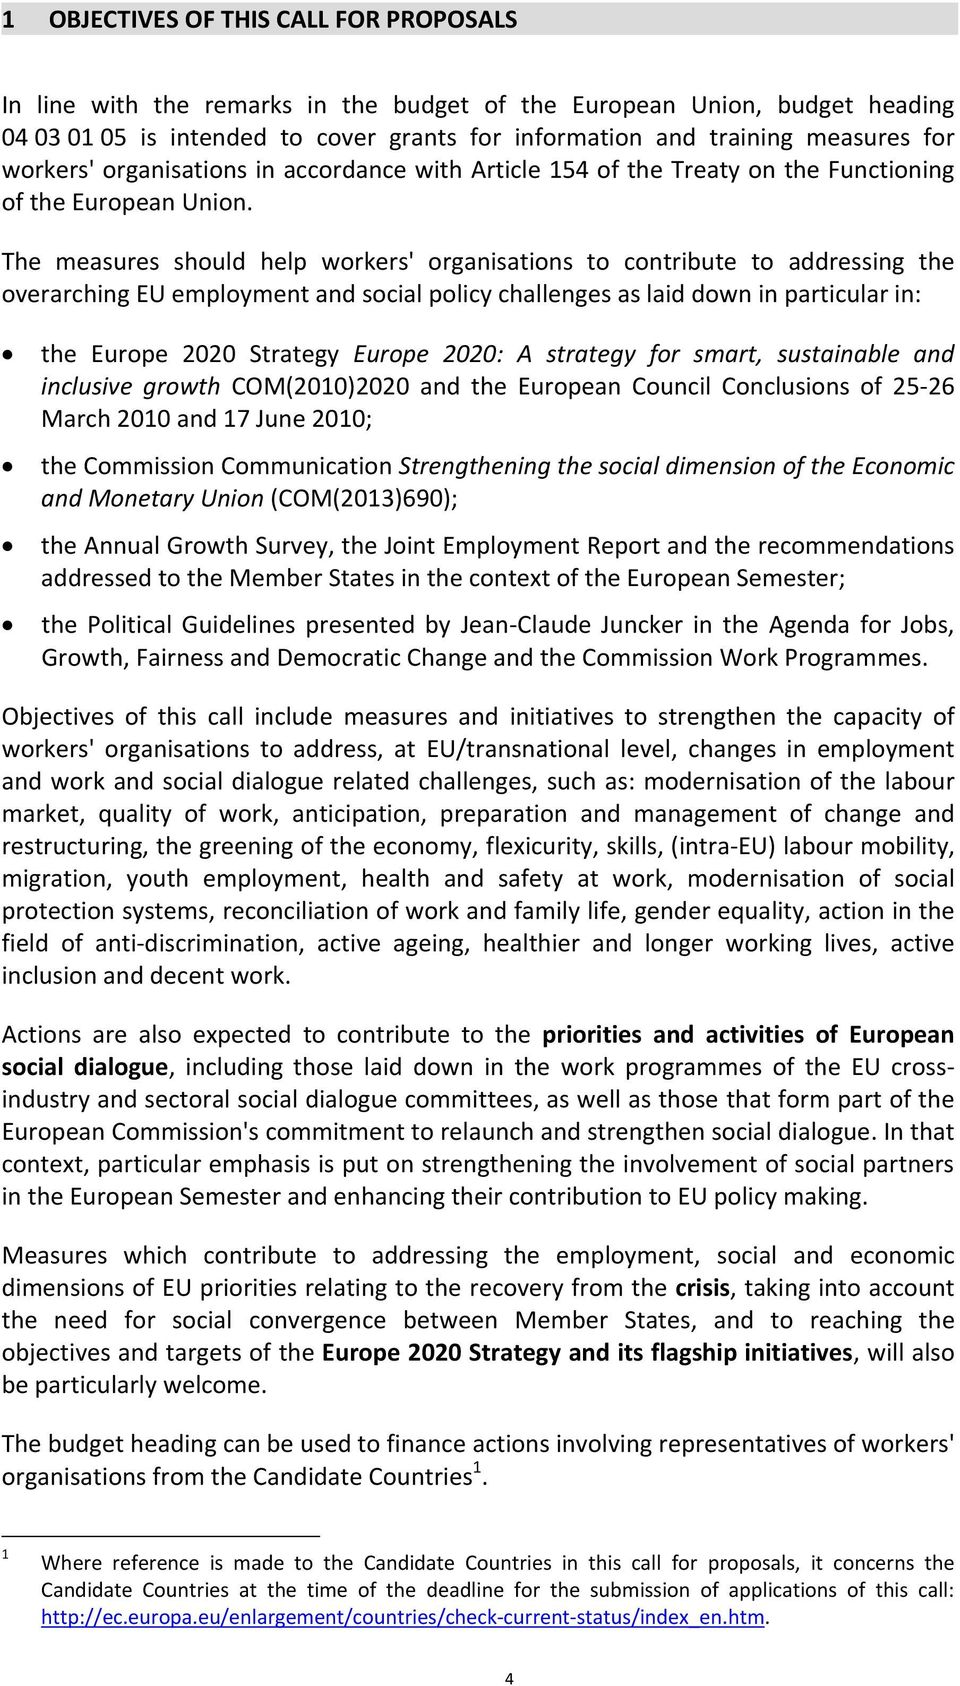 The measures should help workers' organisations to contribute to addressing the overarching EU employment and social policy challenges as laid down in particular in: the Europe 2020 Strategy Europe